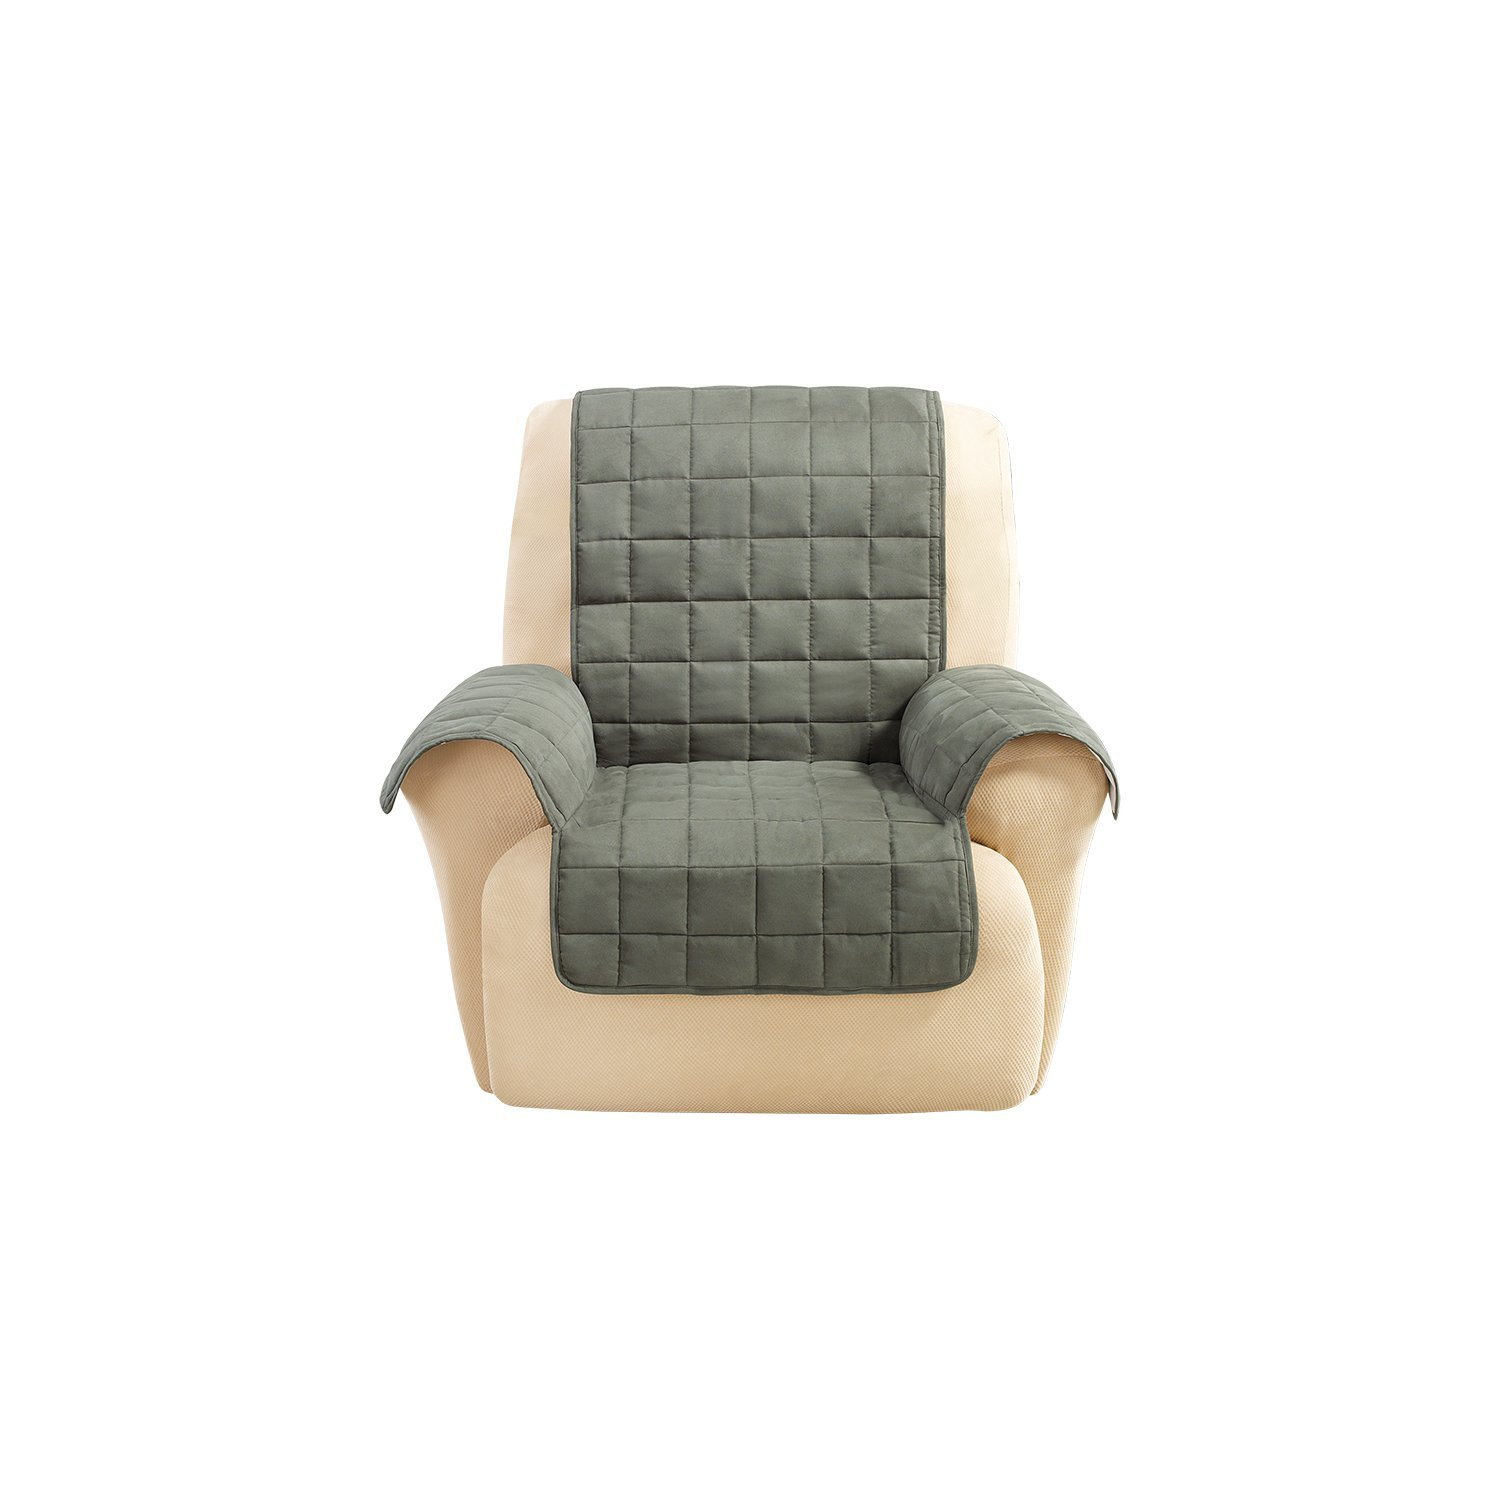 Sure Fit Ultimate Waterproof Quilted Throw - Recliner Slipcover - Loden (SF45319) by Surefit